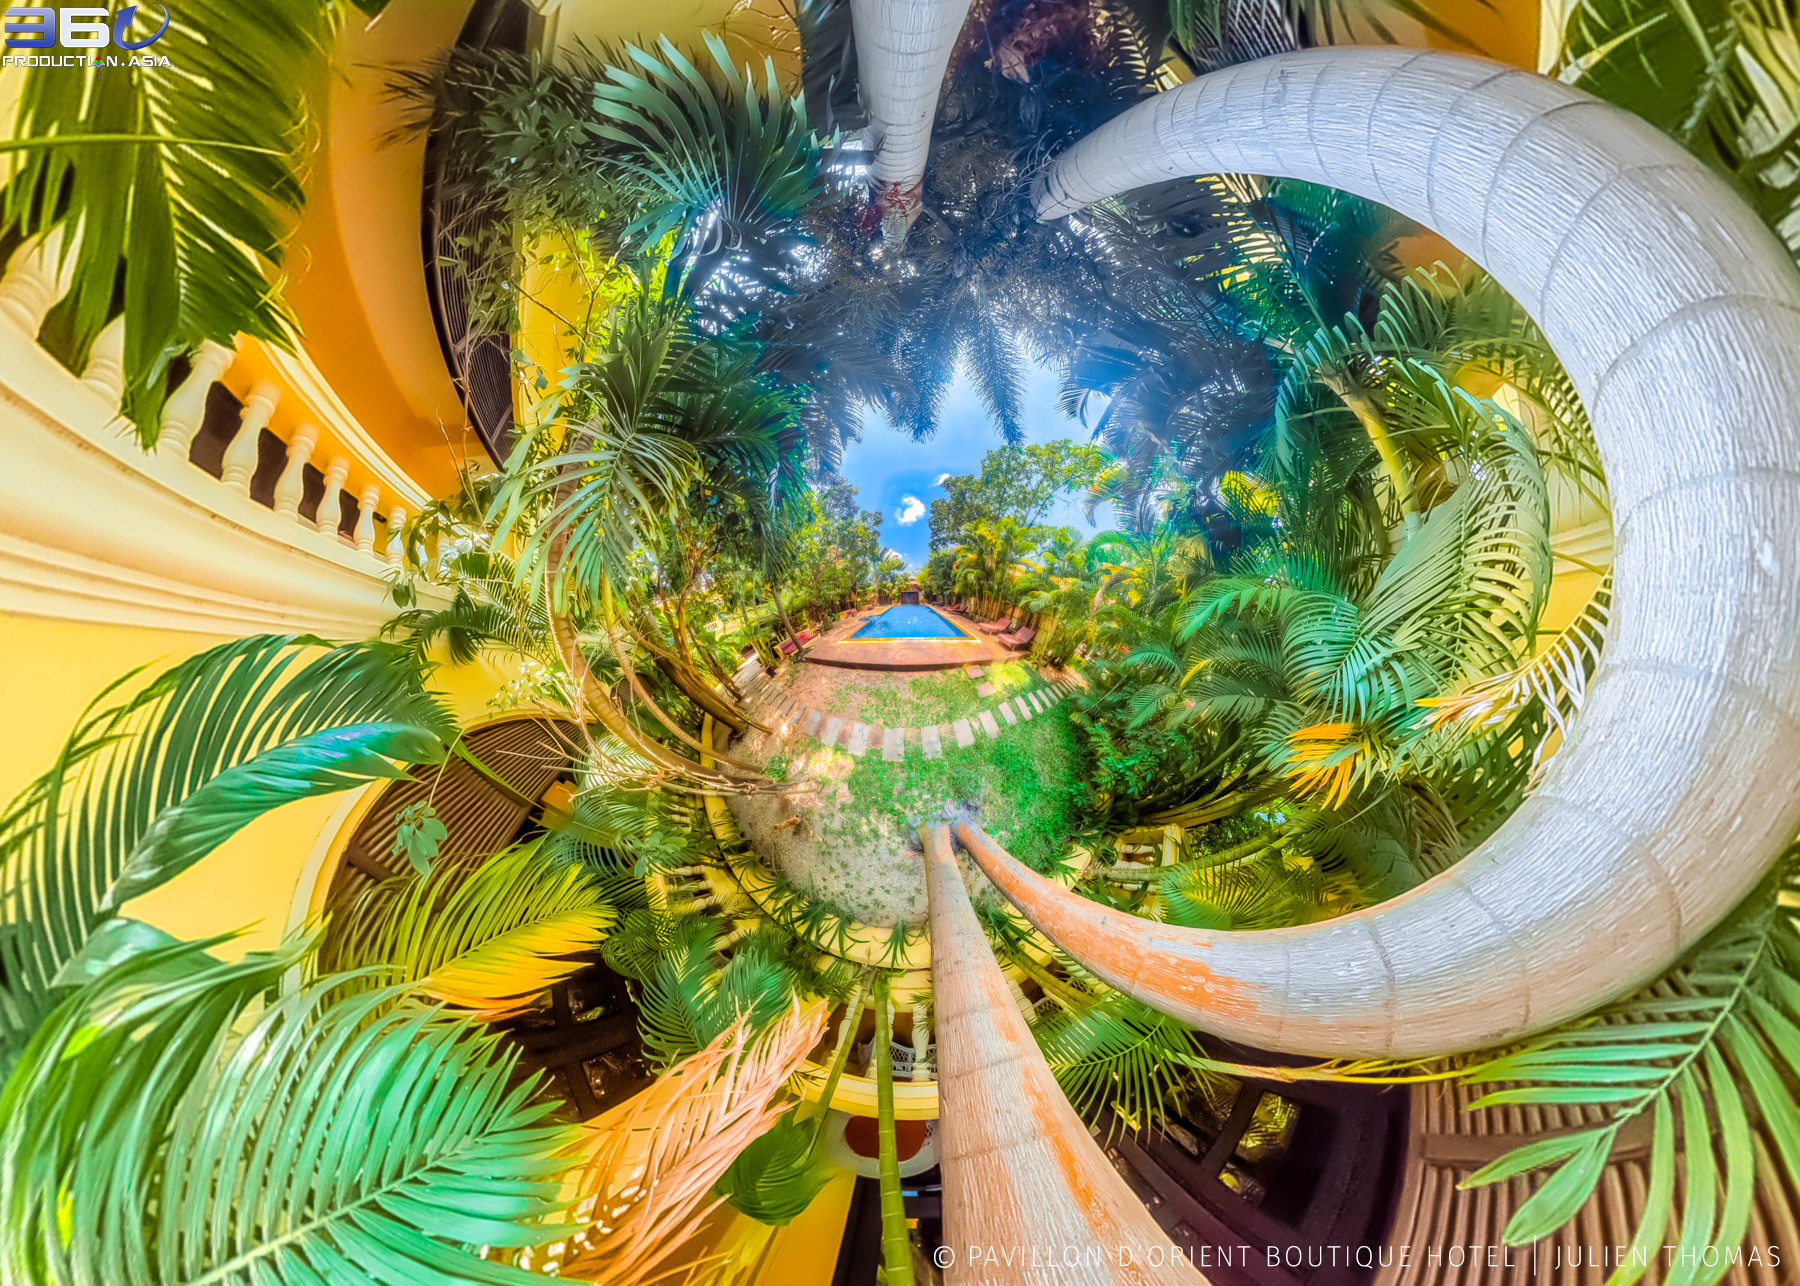 Mini World projection from 360 photo sphere in the garden walk way at Pavillon d'Orient Boutique Hotel, Siem Reap - Cambodia.